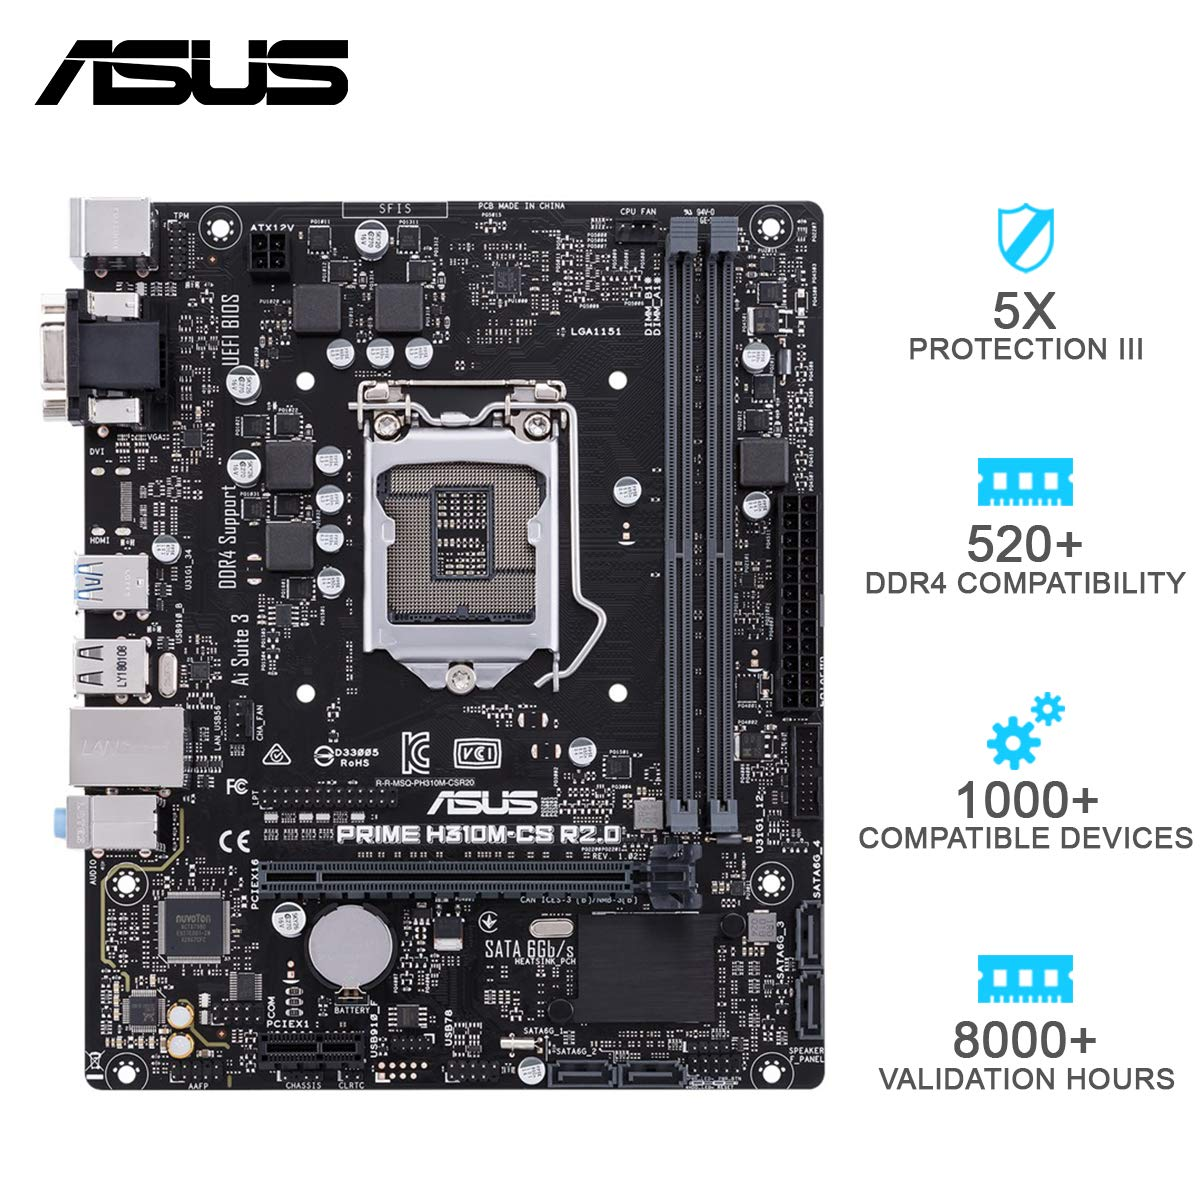 ASUS Prime H310M-CS R2.0 mATX Motherboard Intel 1151 Socket DDR4 2666MHz with SATA 6Gbps and USB 3.1 Gen 1 (ASMB0589)